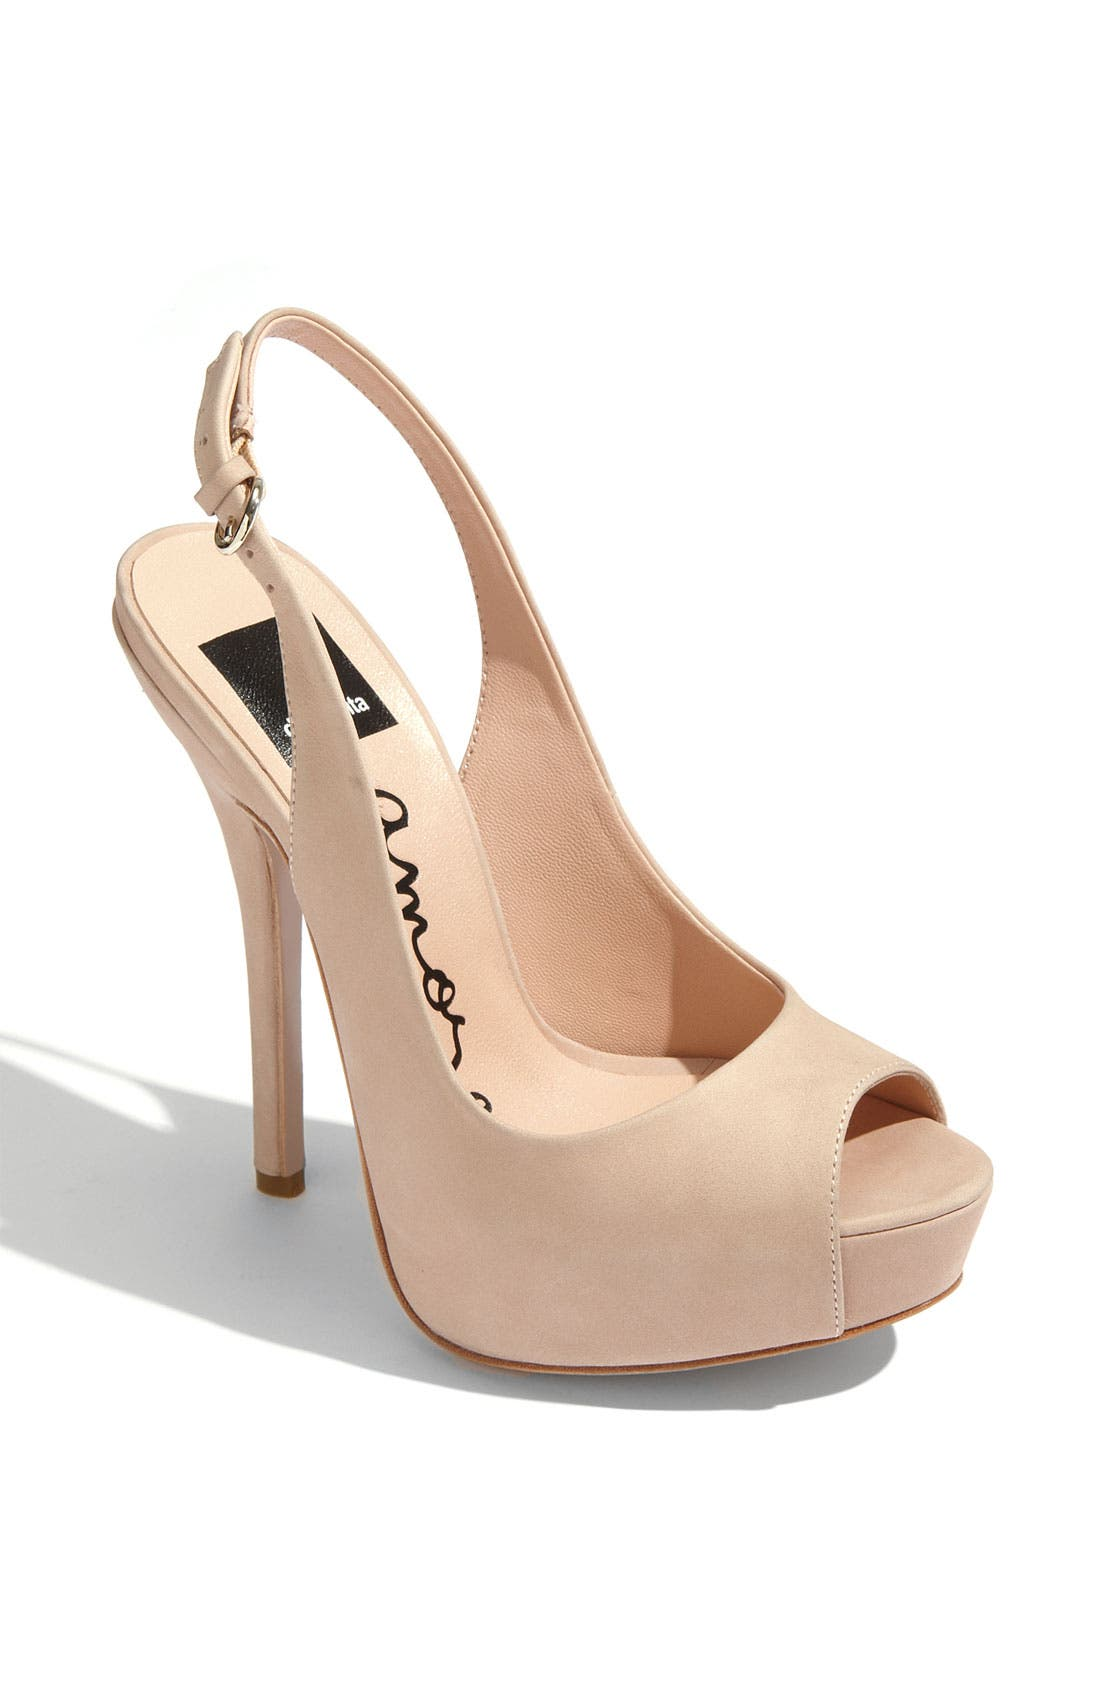 Alternate Image 1 Selected - Dolce Vita 'Vivo' Slingback Pump